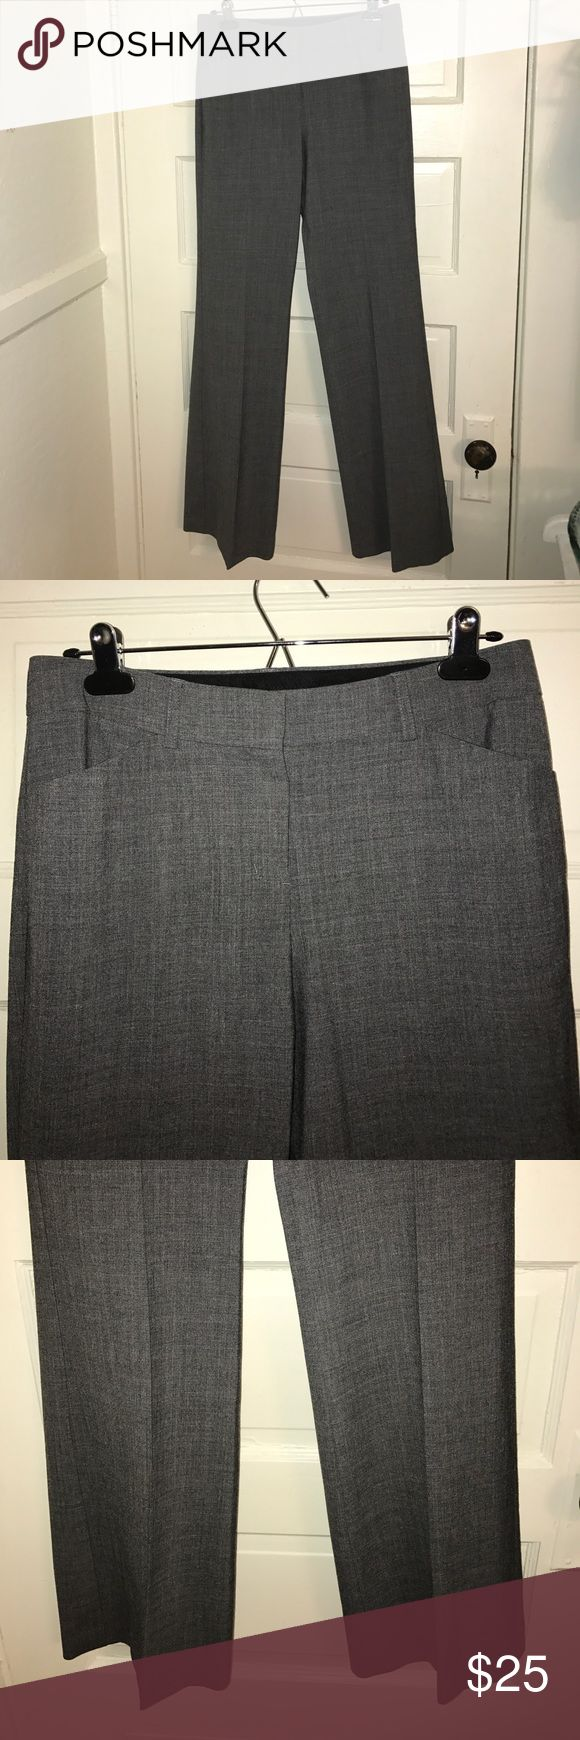 """SALE❤️ Express Editor dress slacks charcoal 4 Express Editor dress slacks pants size 4. Charcoal gray. Inseam measures 33"""". Worn once. Like new. Express Pants Trousers"""